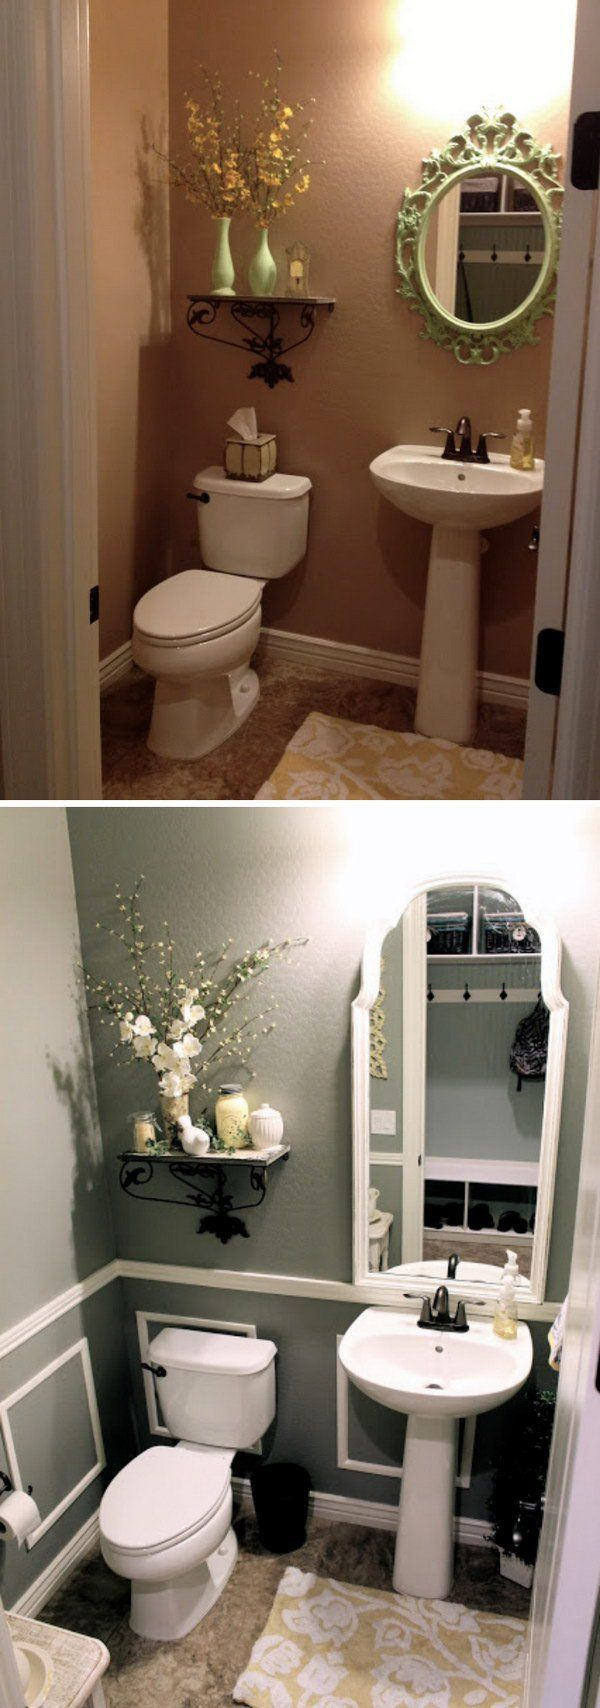 1001 Ideas For Beautiful Bathroom Designs For Small Spaces: 37 Small Bathroom Makeovers. Before And After Pics